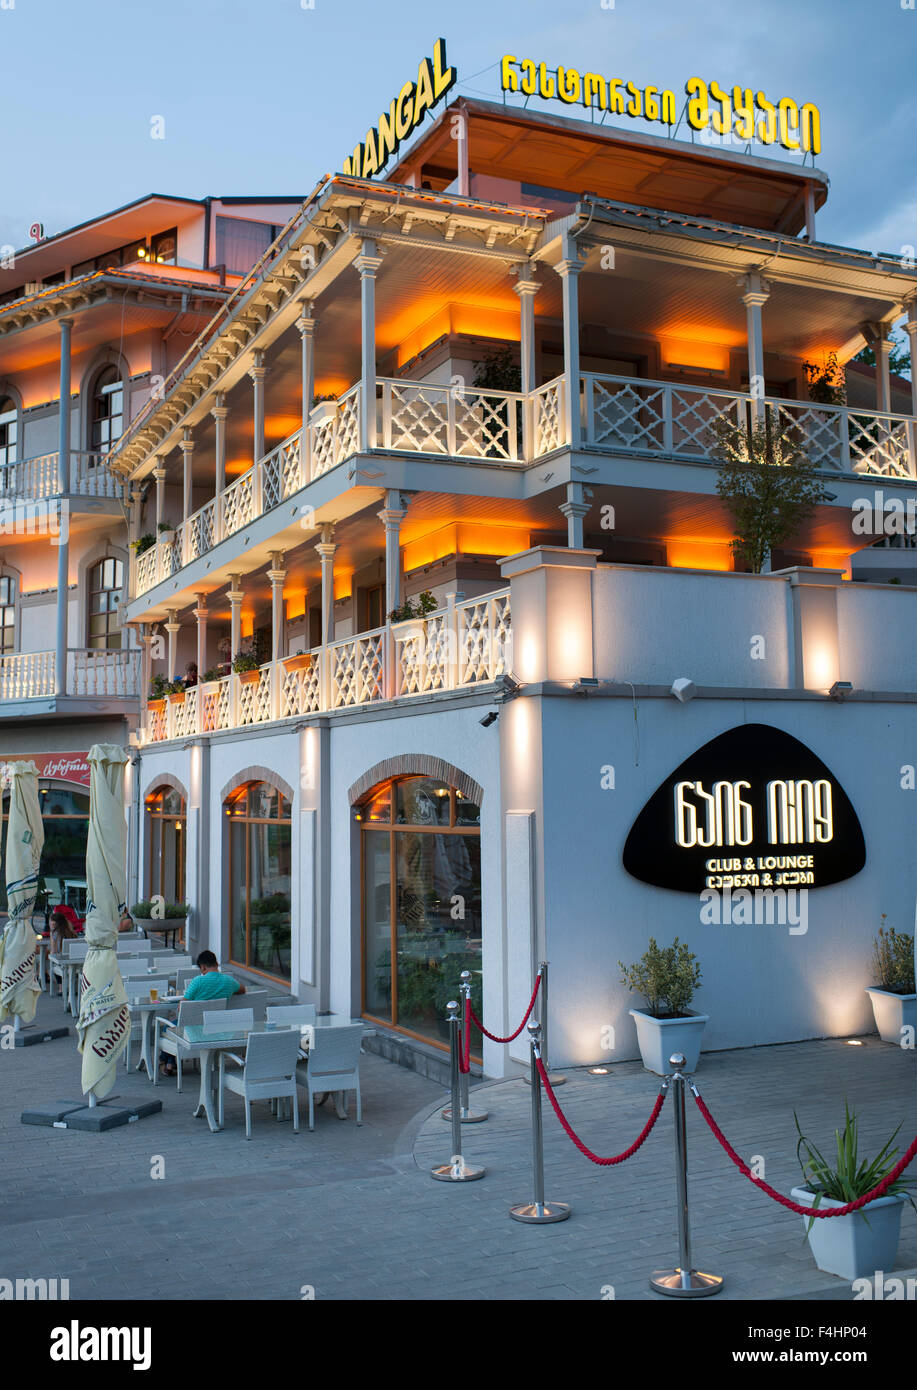 Dusk view of the Nine club and lounge in Tbilisi, the capital of Georgia. - Stock Image